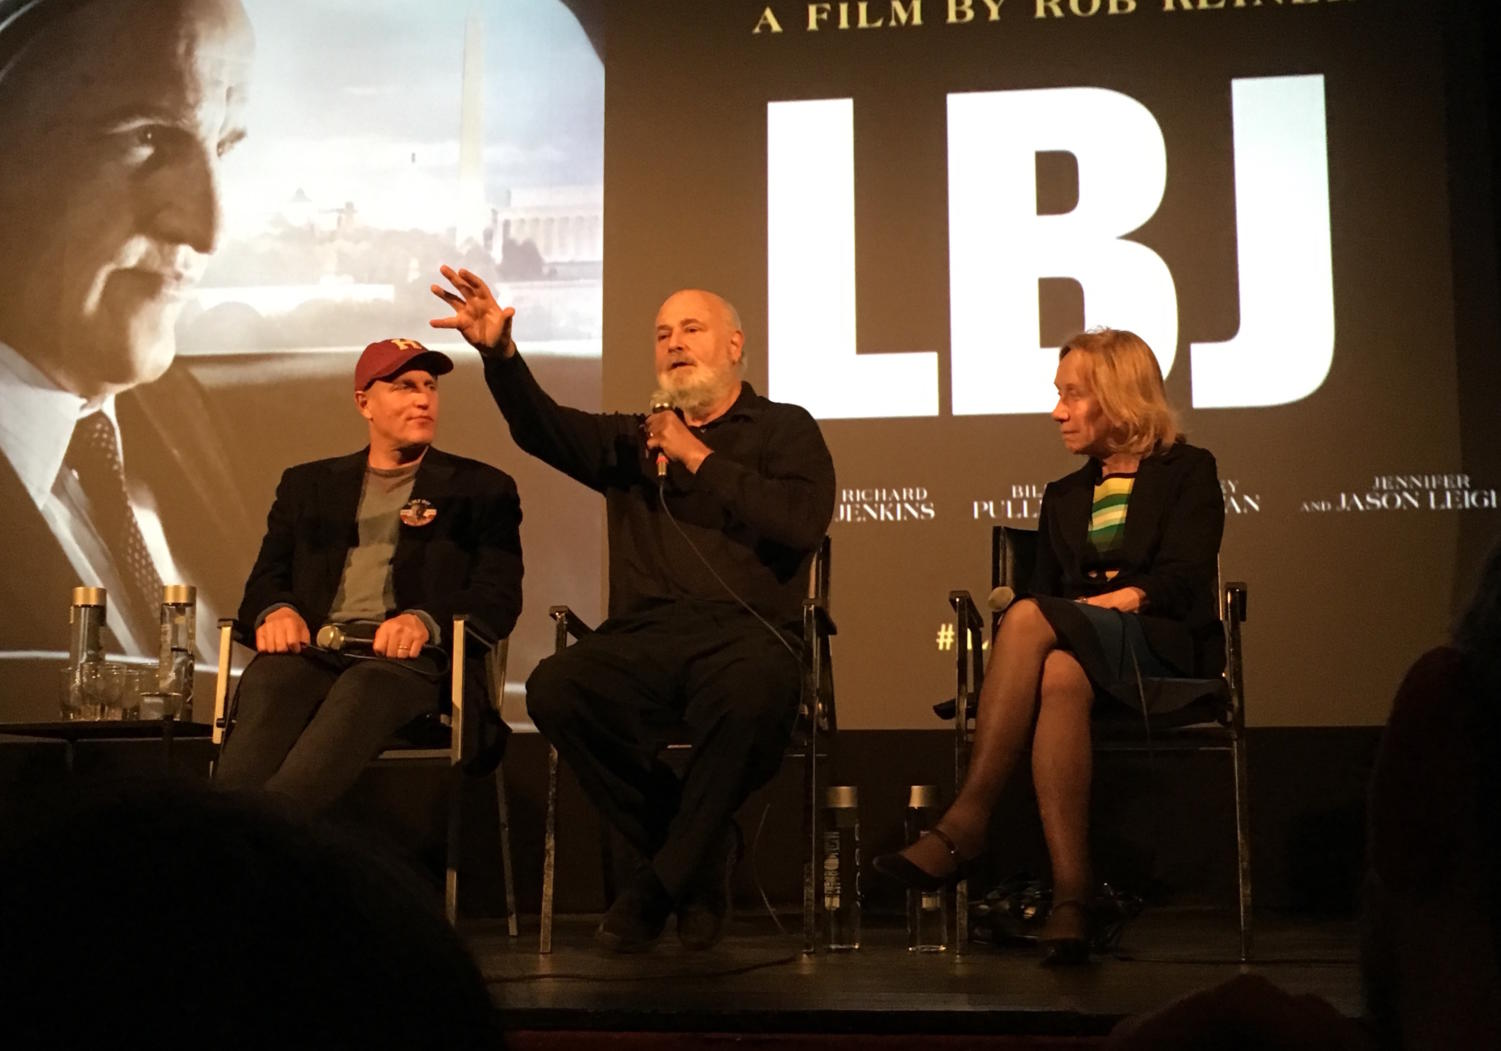 Woody Harrelson (left), Rob Reiner (center), and Doris Kearns Goodwin answer questions from the audience after a screening of